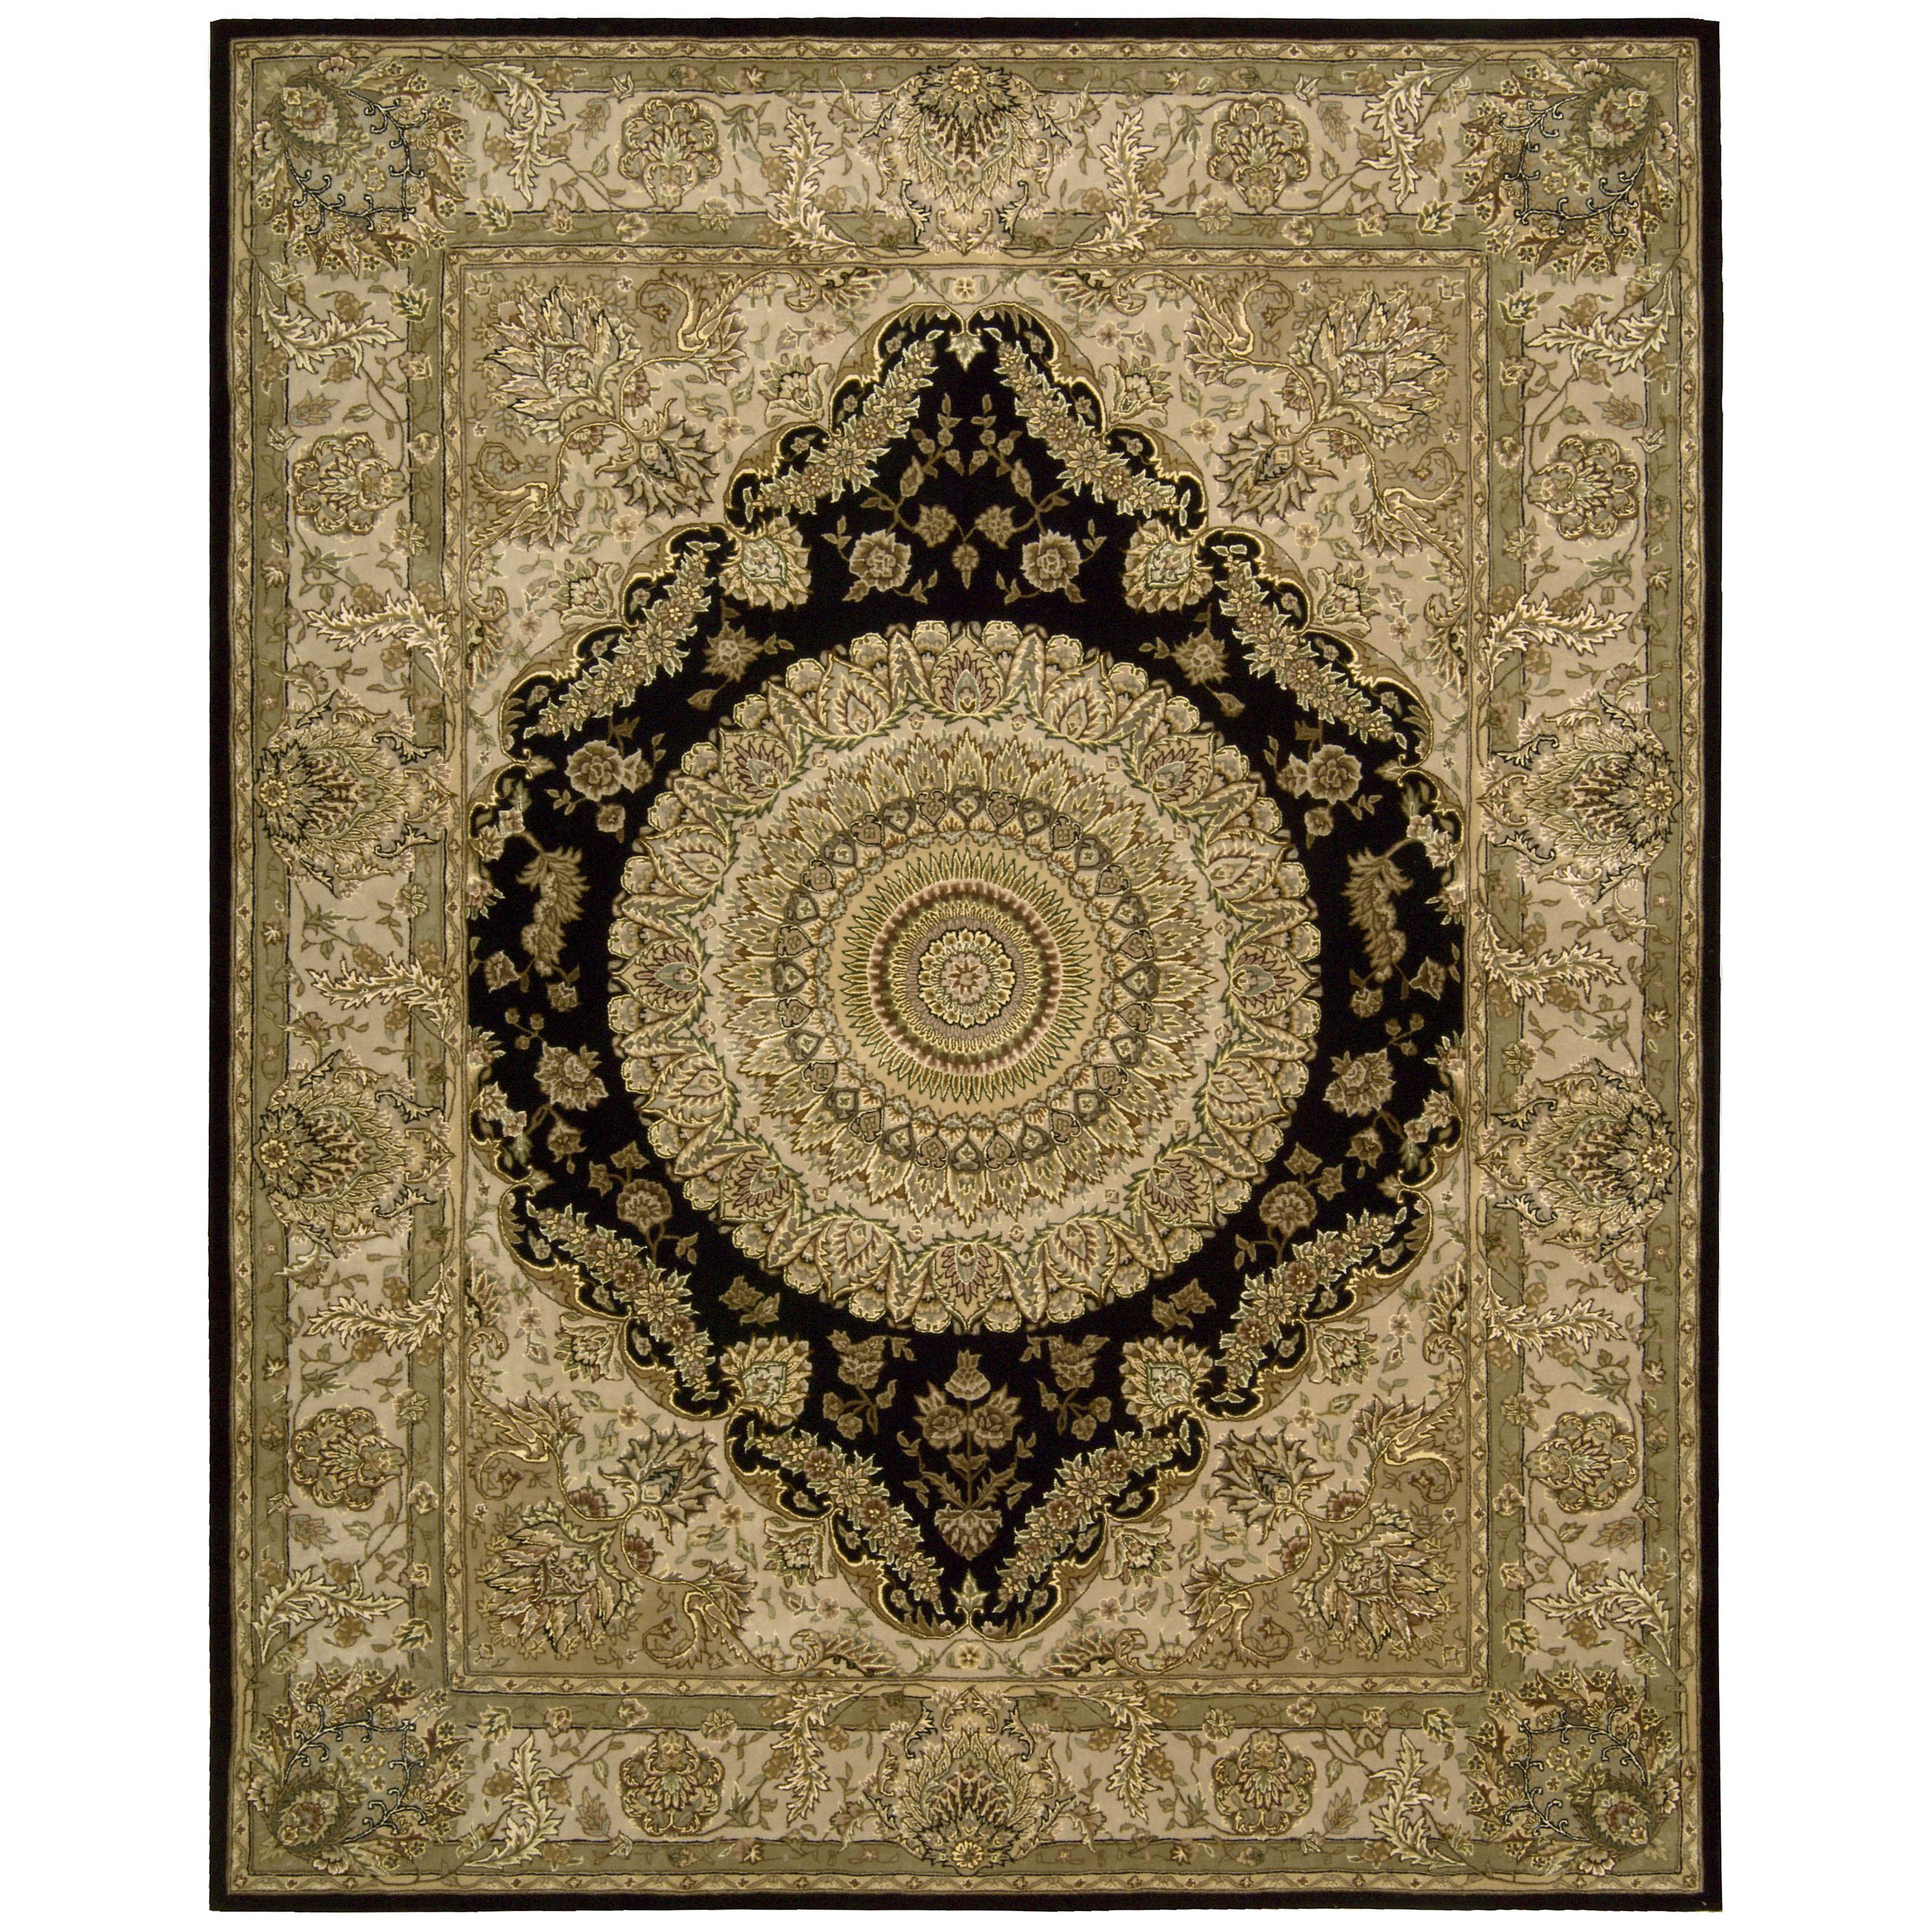 Nourison 2000 2233 Oriental Rug Black-7.6 x 9.6 ft. Oval by Overstock